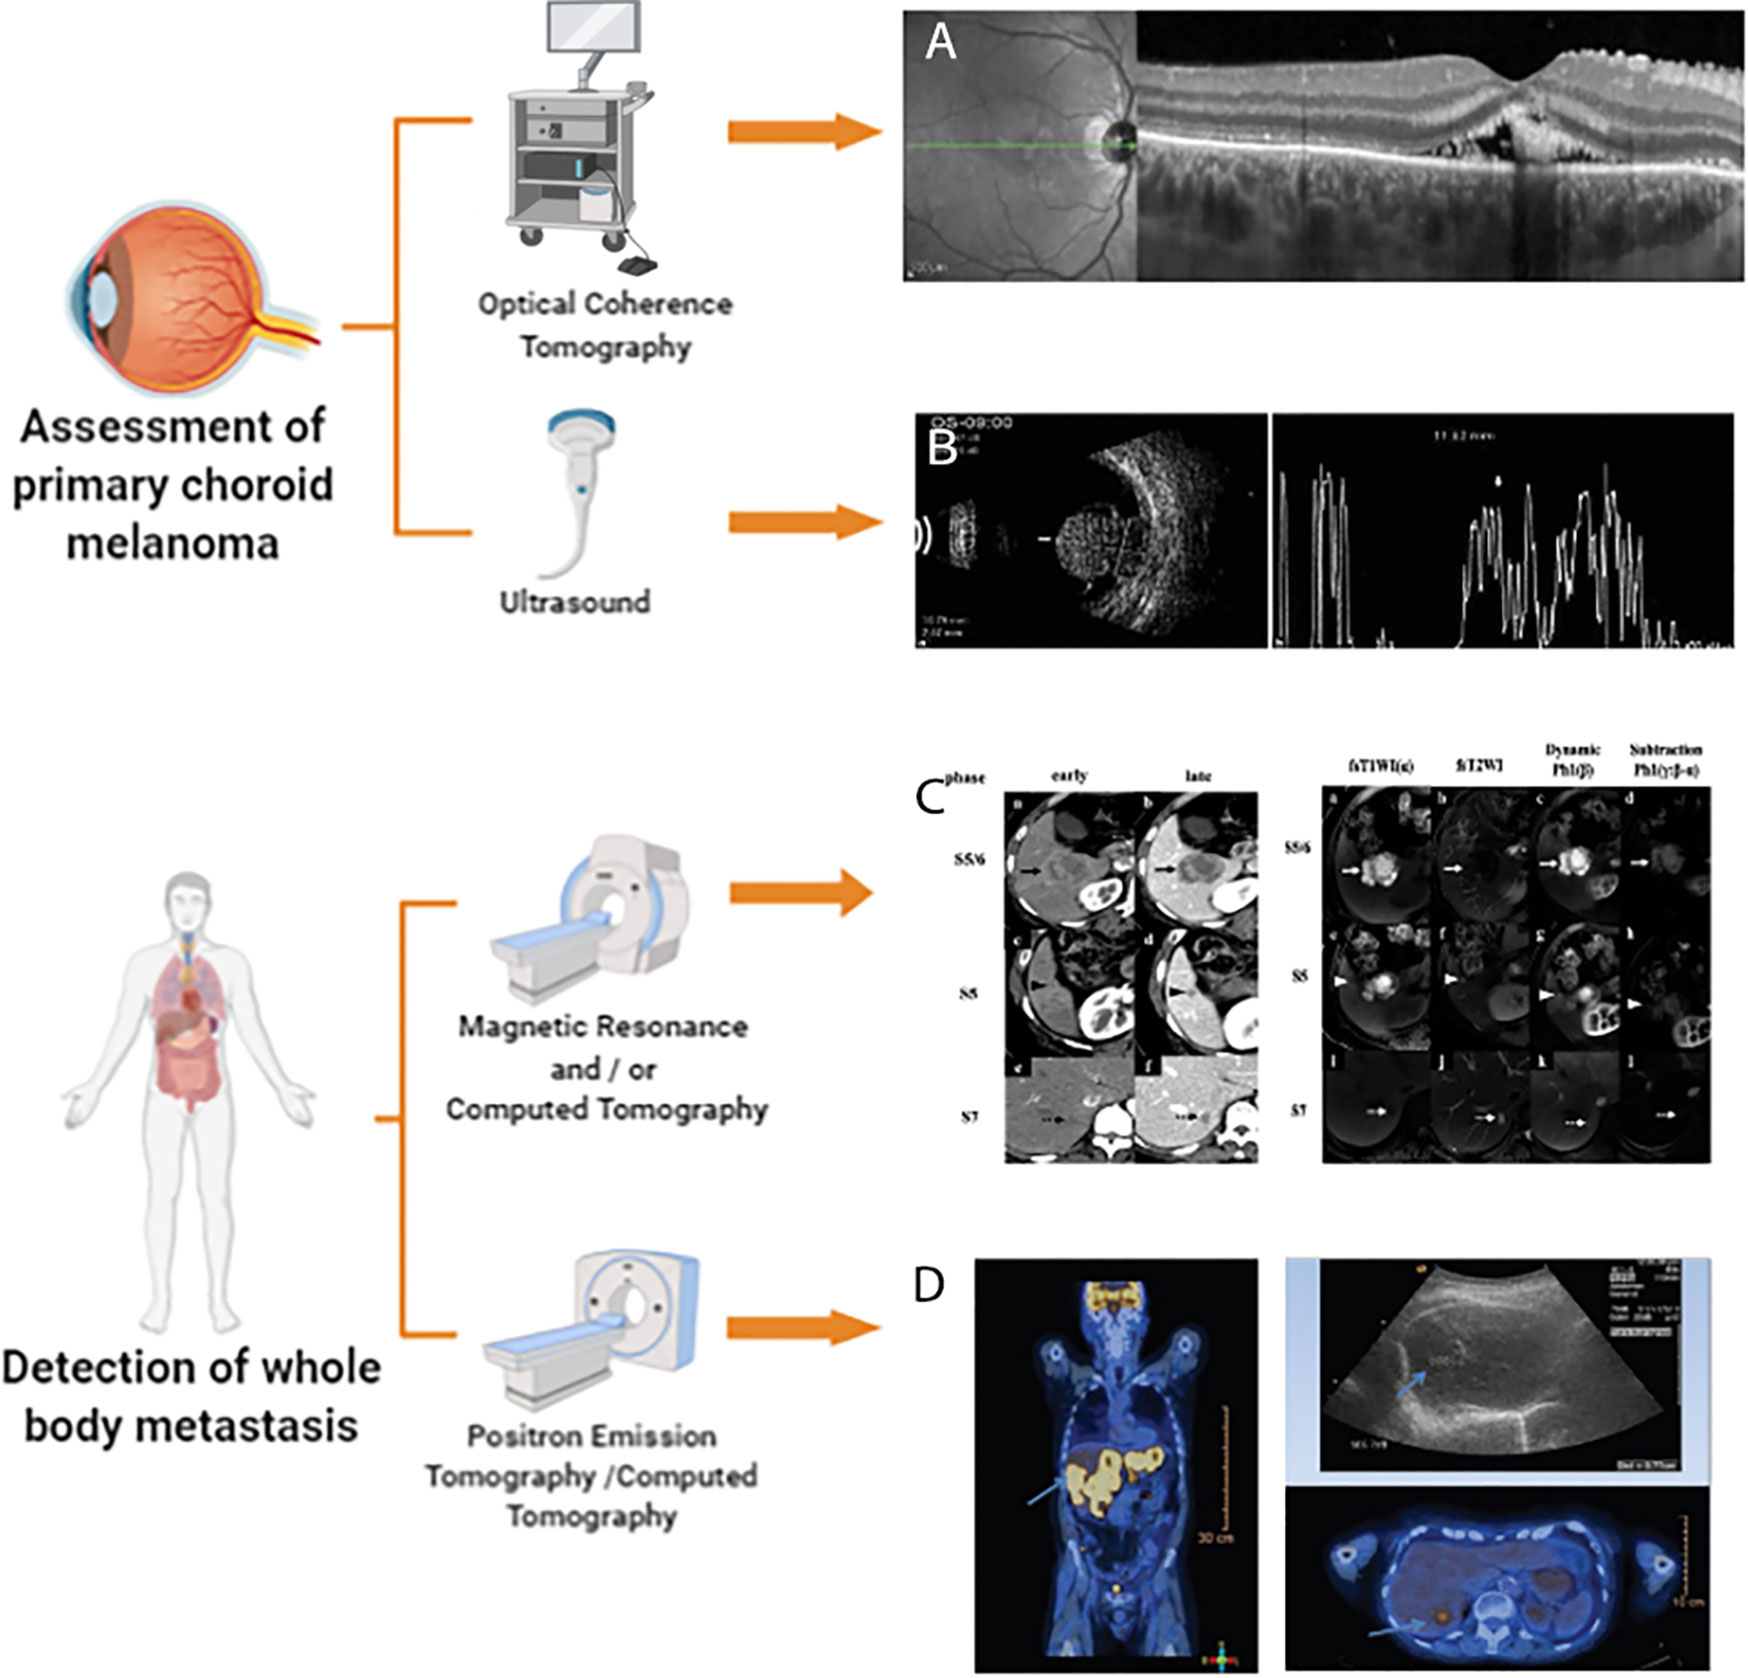 Frontiers Application Of Multimodal And Molecular Imaging Techniques In The Detection Of Choroidal Melanomas Oncology